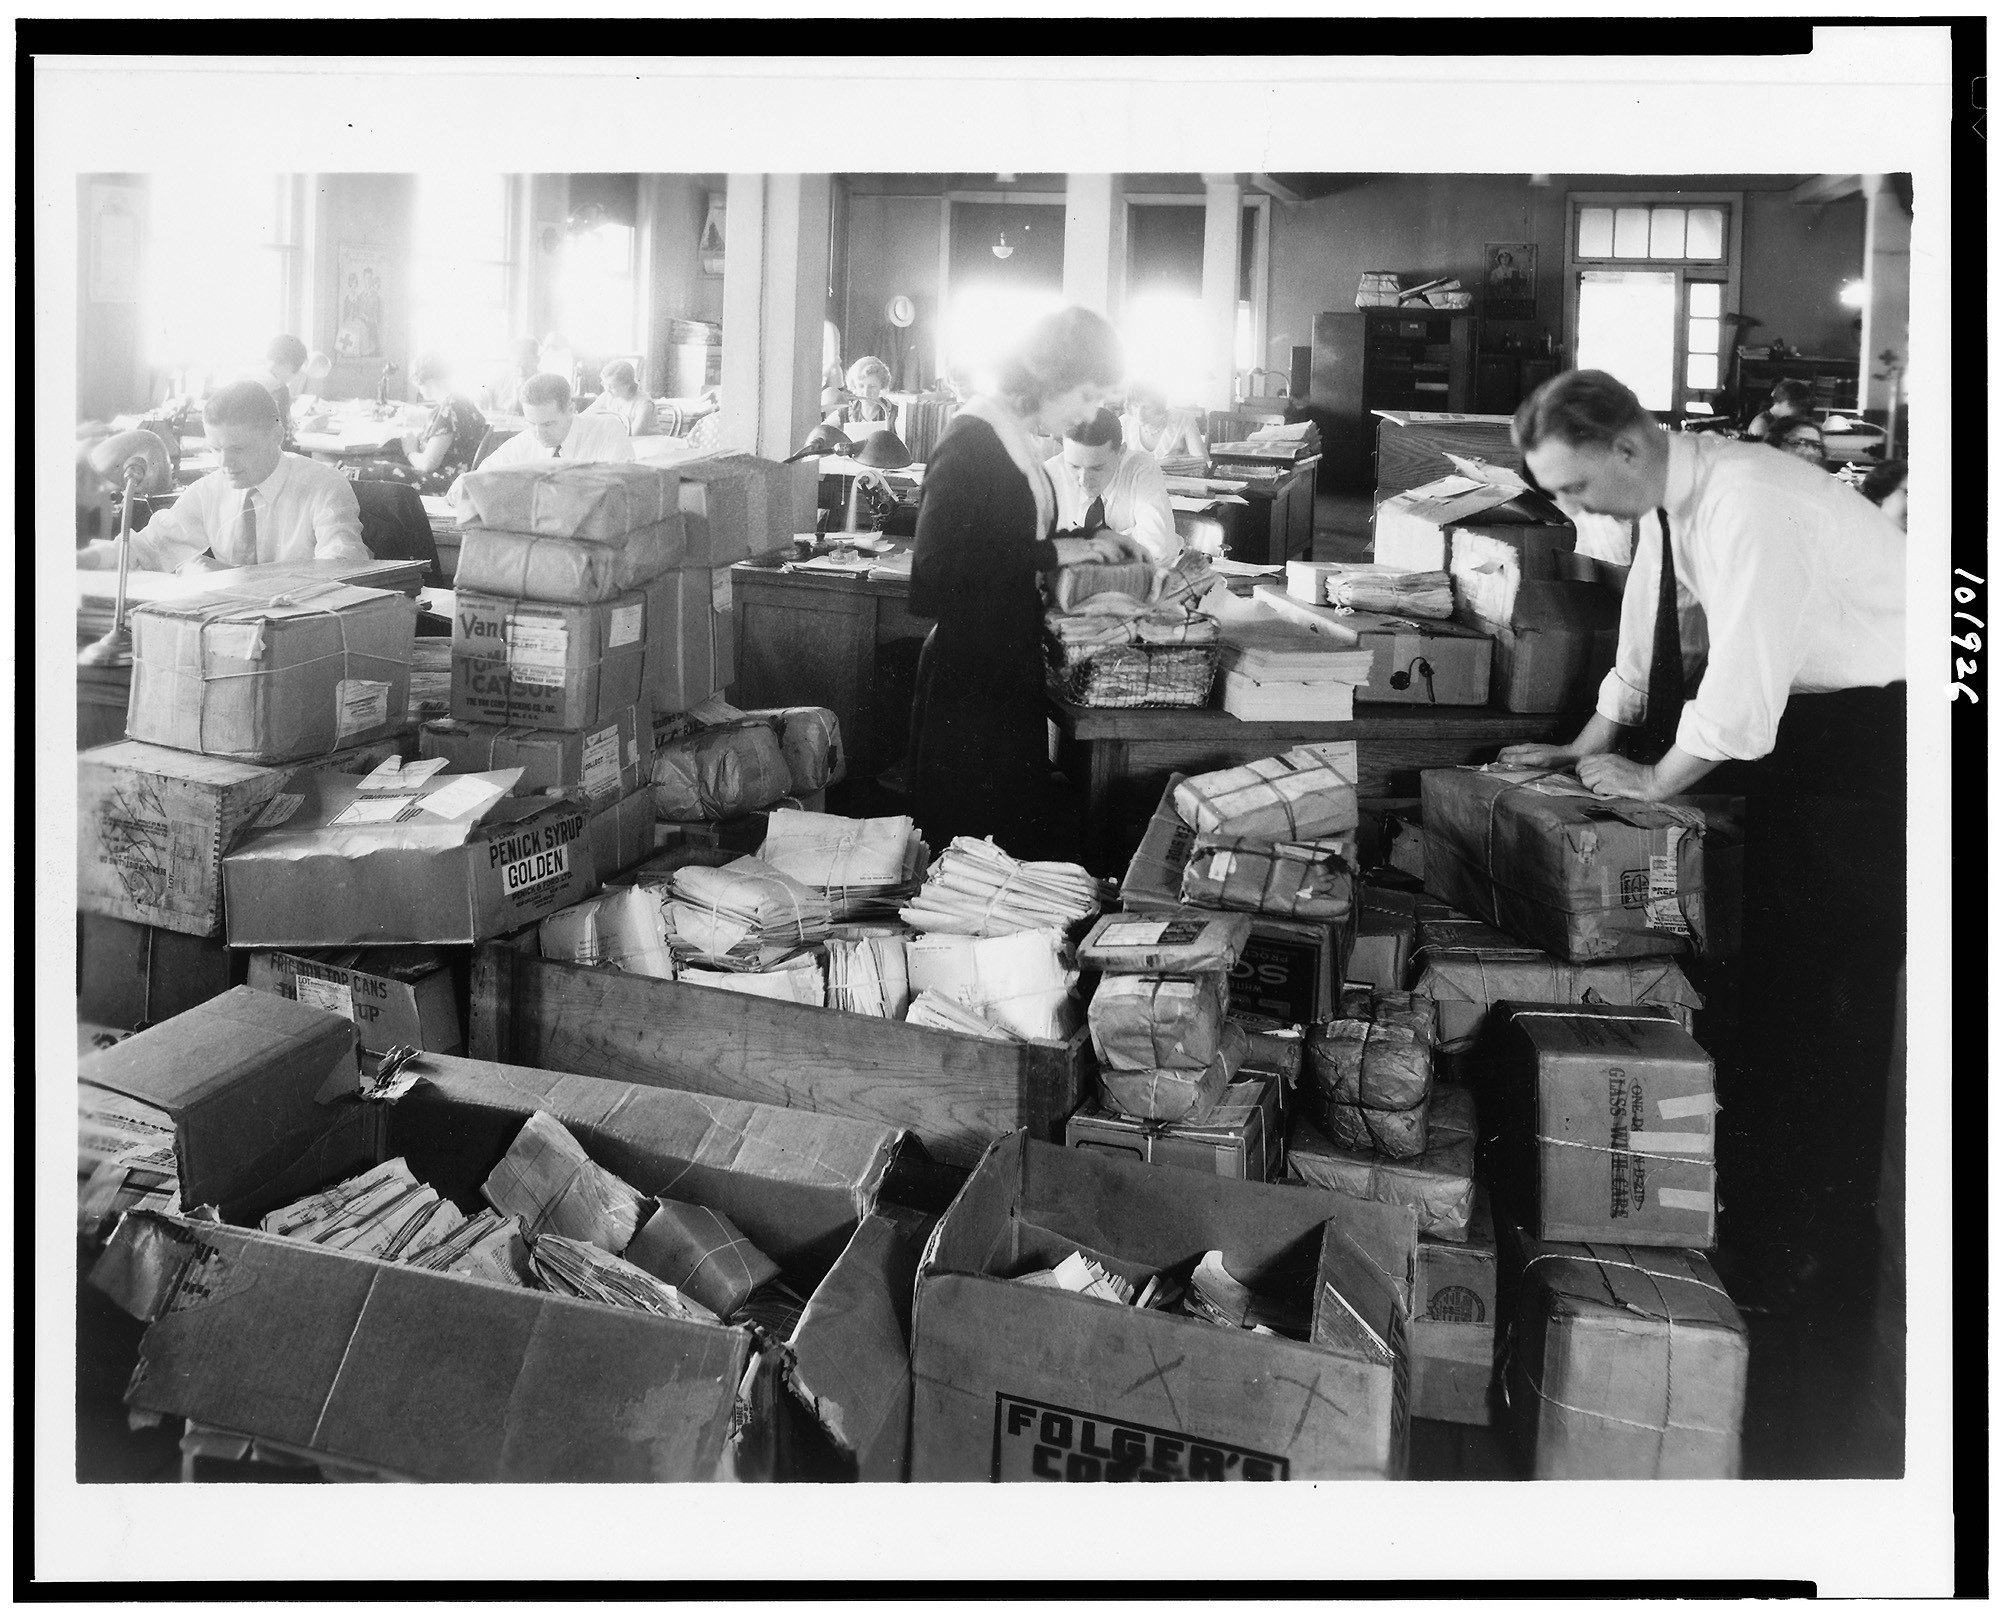 Office workers handling boxes of mail and paperwork.